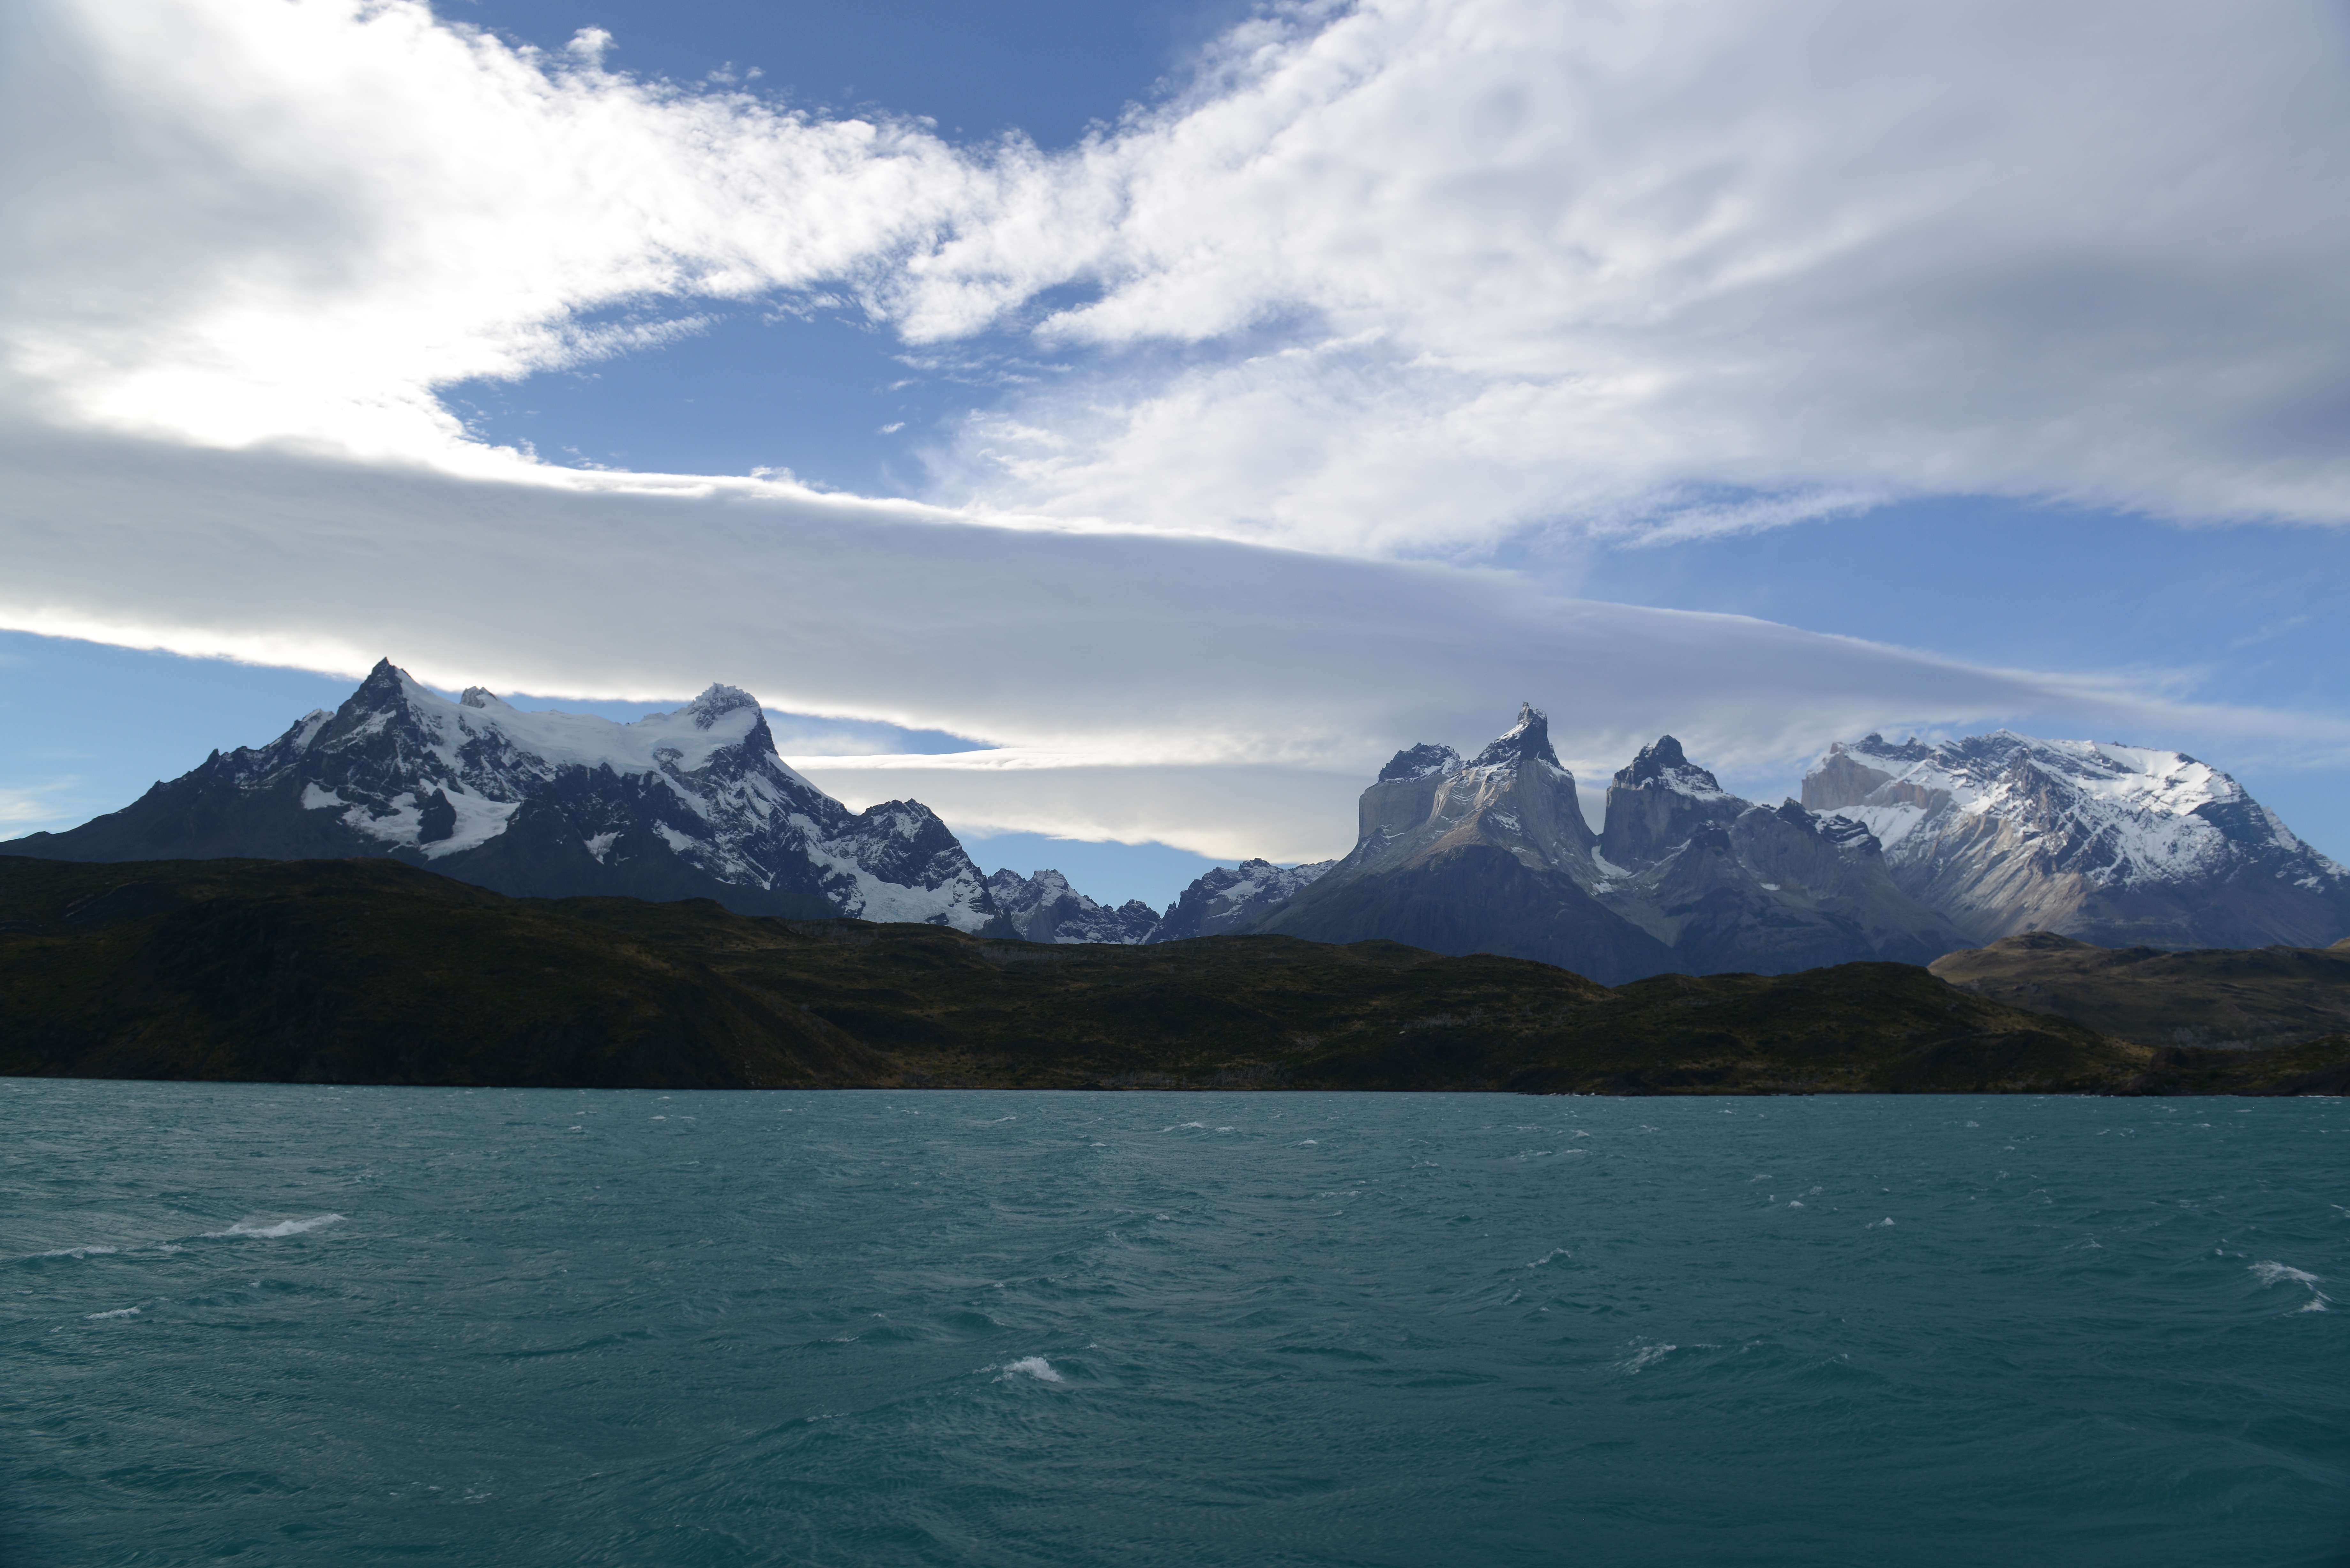 Free download high resolution image - free image free photo free stock image public domain picture -Pehoe Lake and Los Cuernos in the Torres del Paine National Park